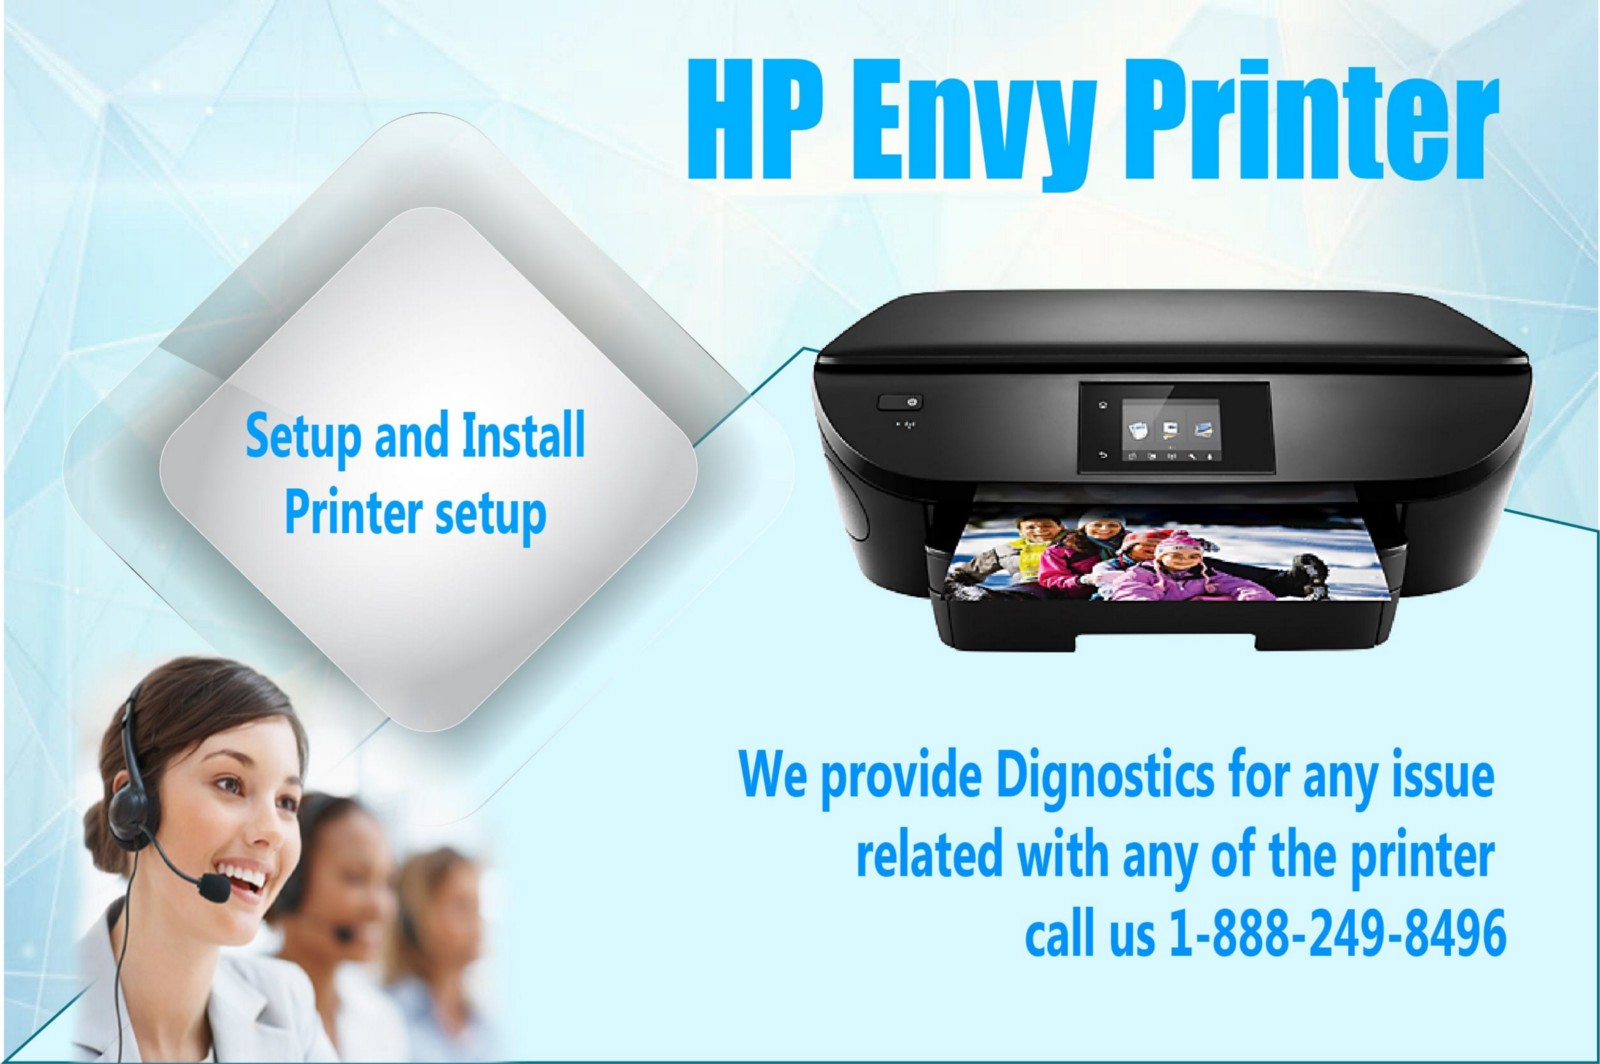 printer issues and solutions 123 hp printer support rh medium com hp printer troubleshooting guide 7515 series hp printer troubleshooting guide 7515 series